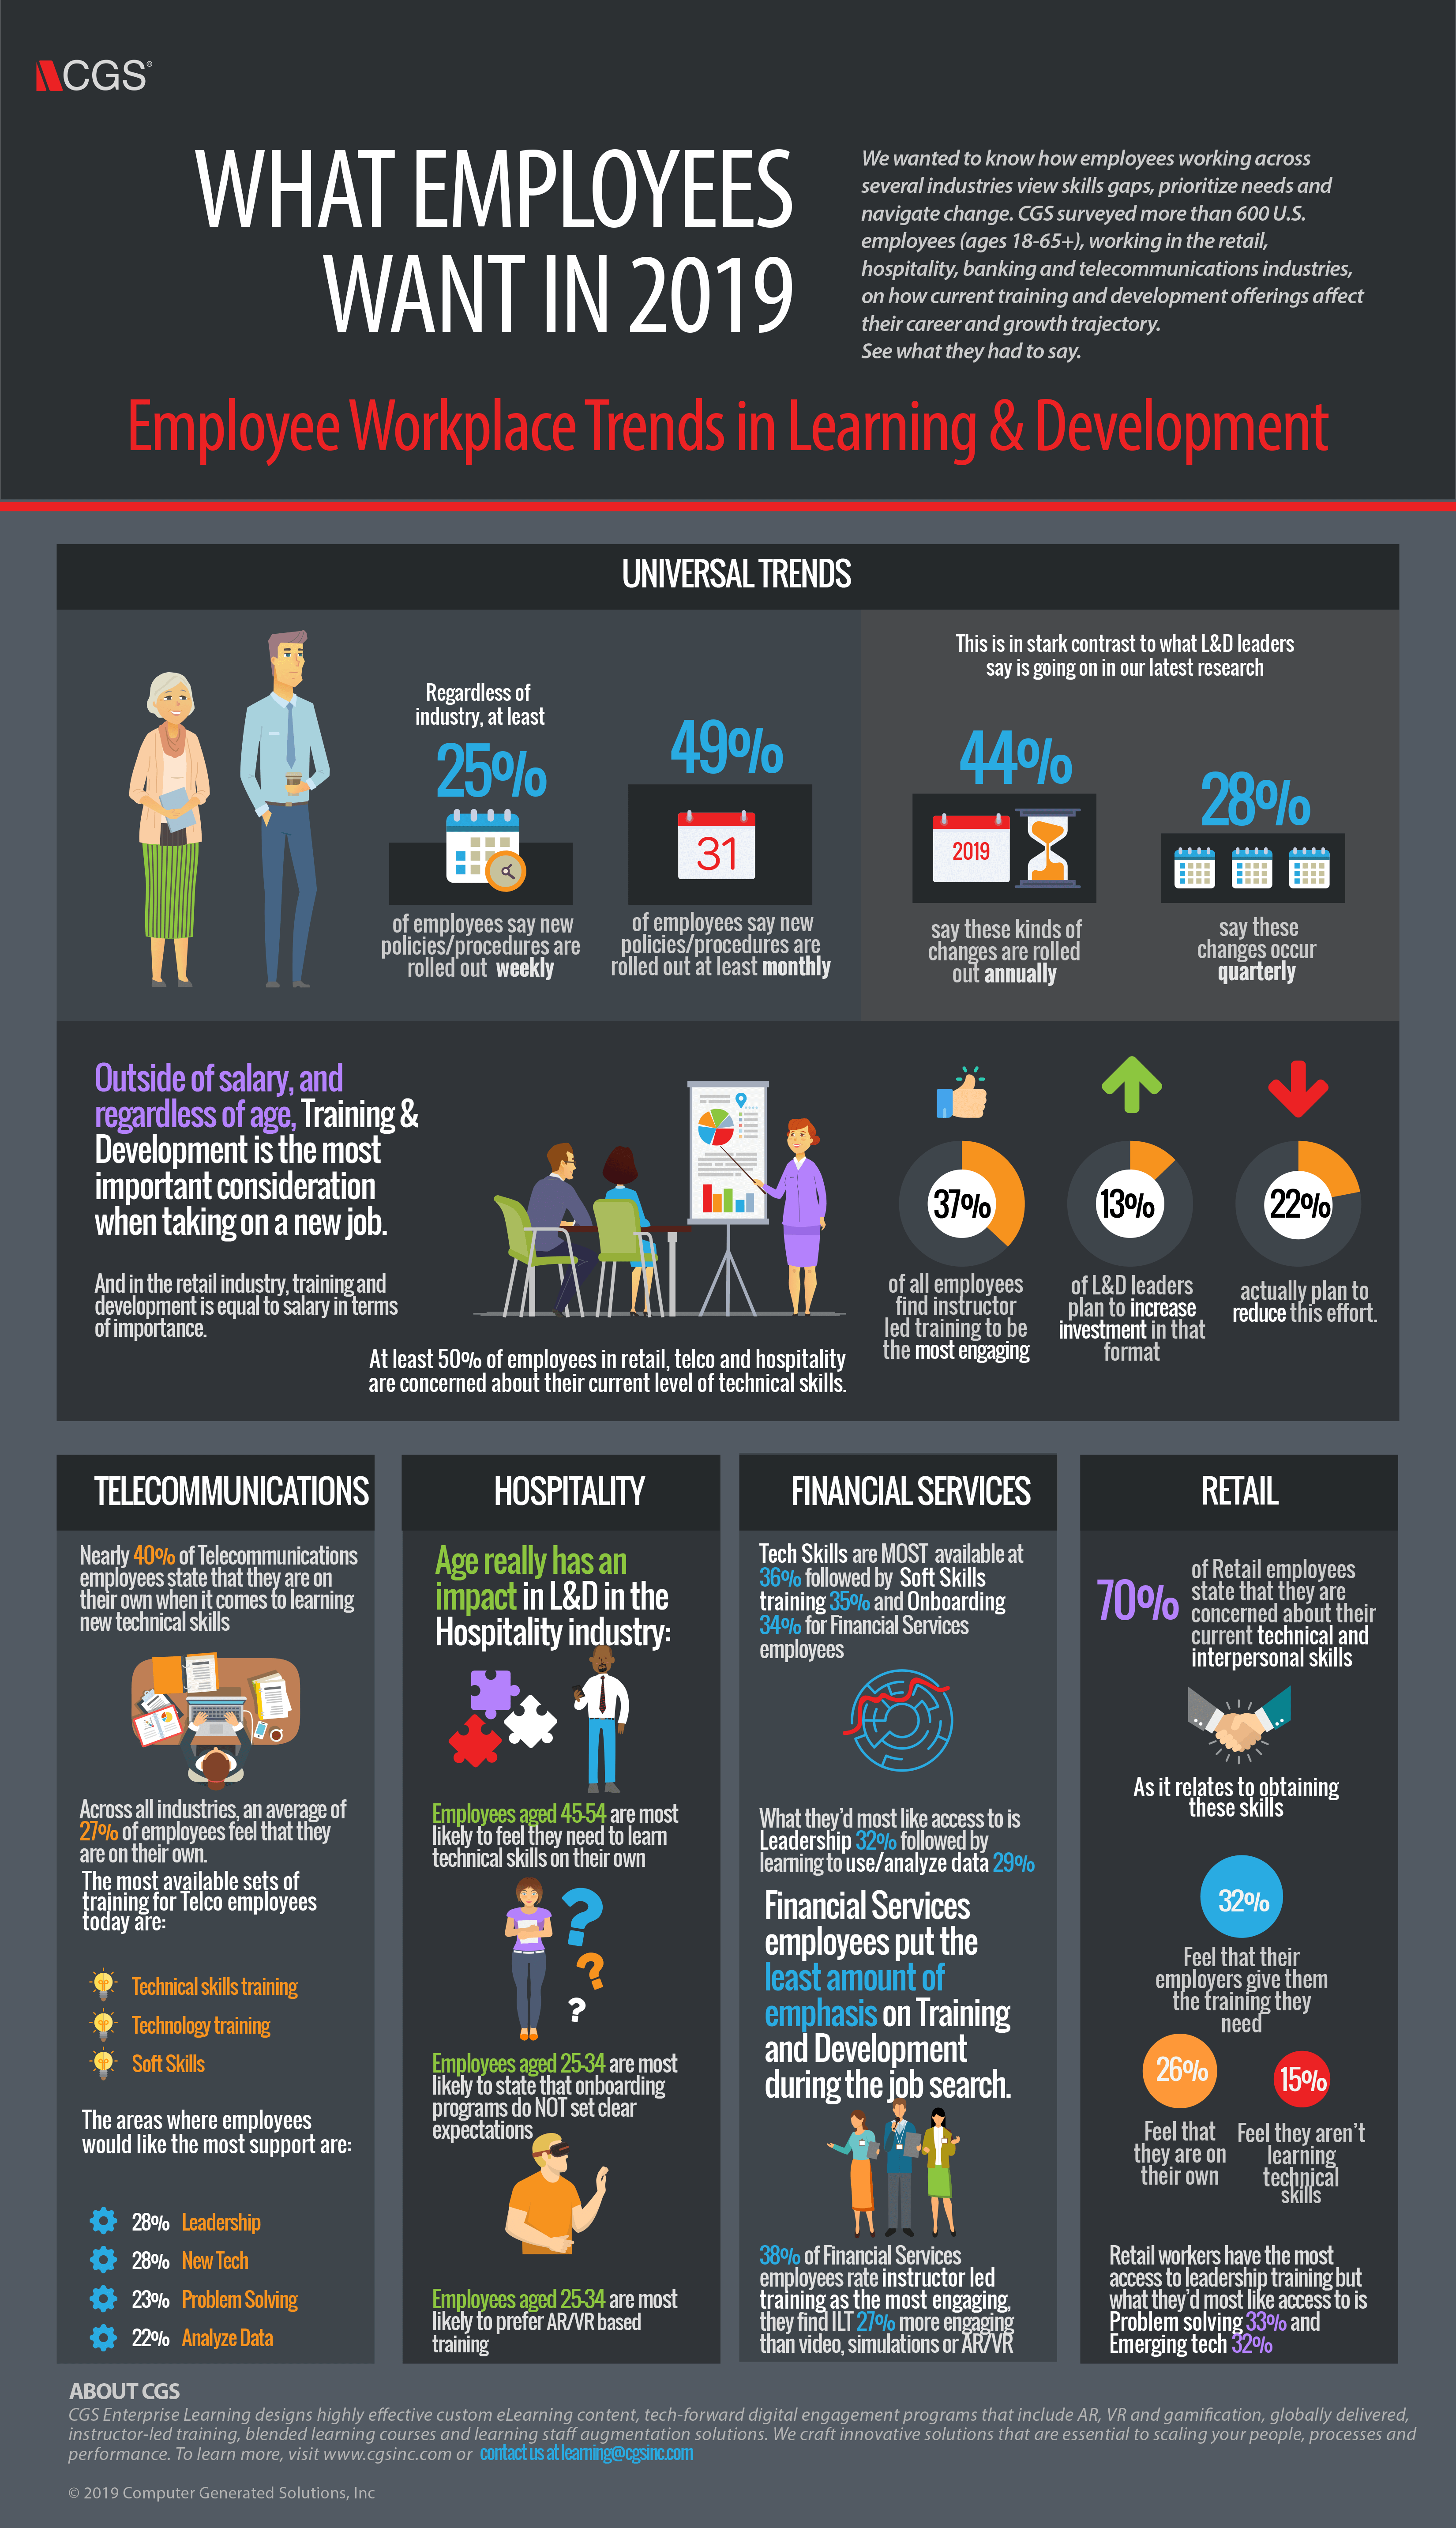 What employees want in 2019 info graphic for enterprise learning